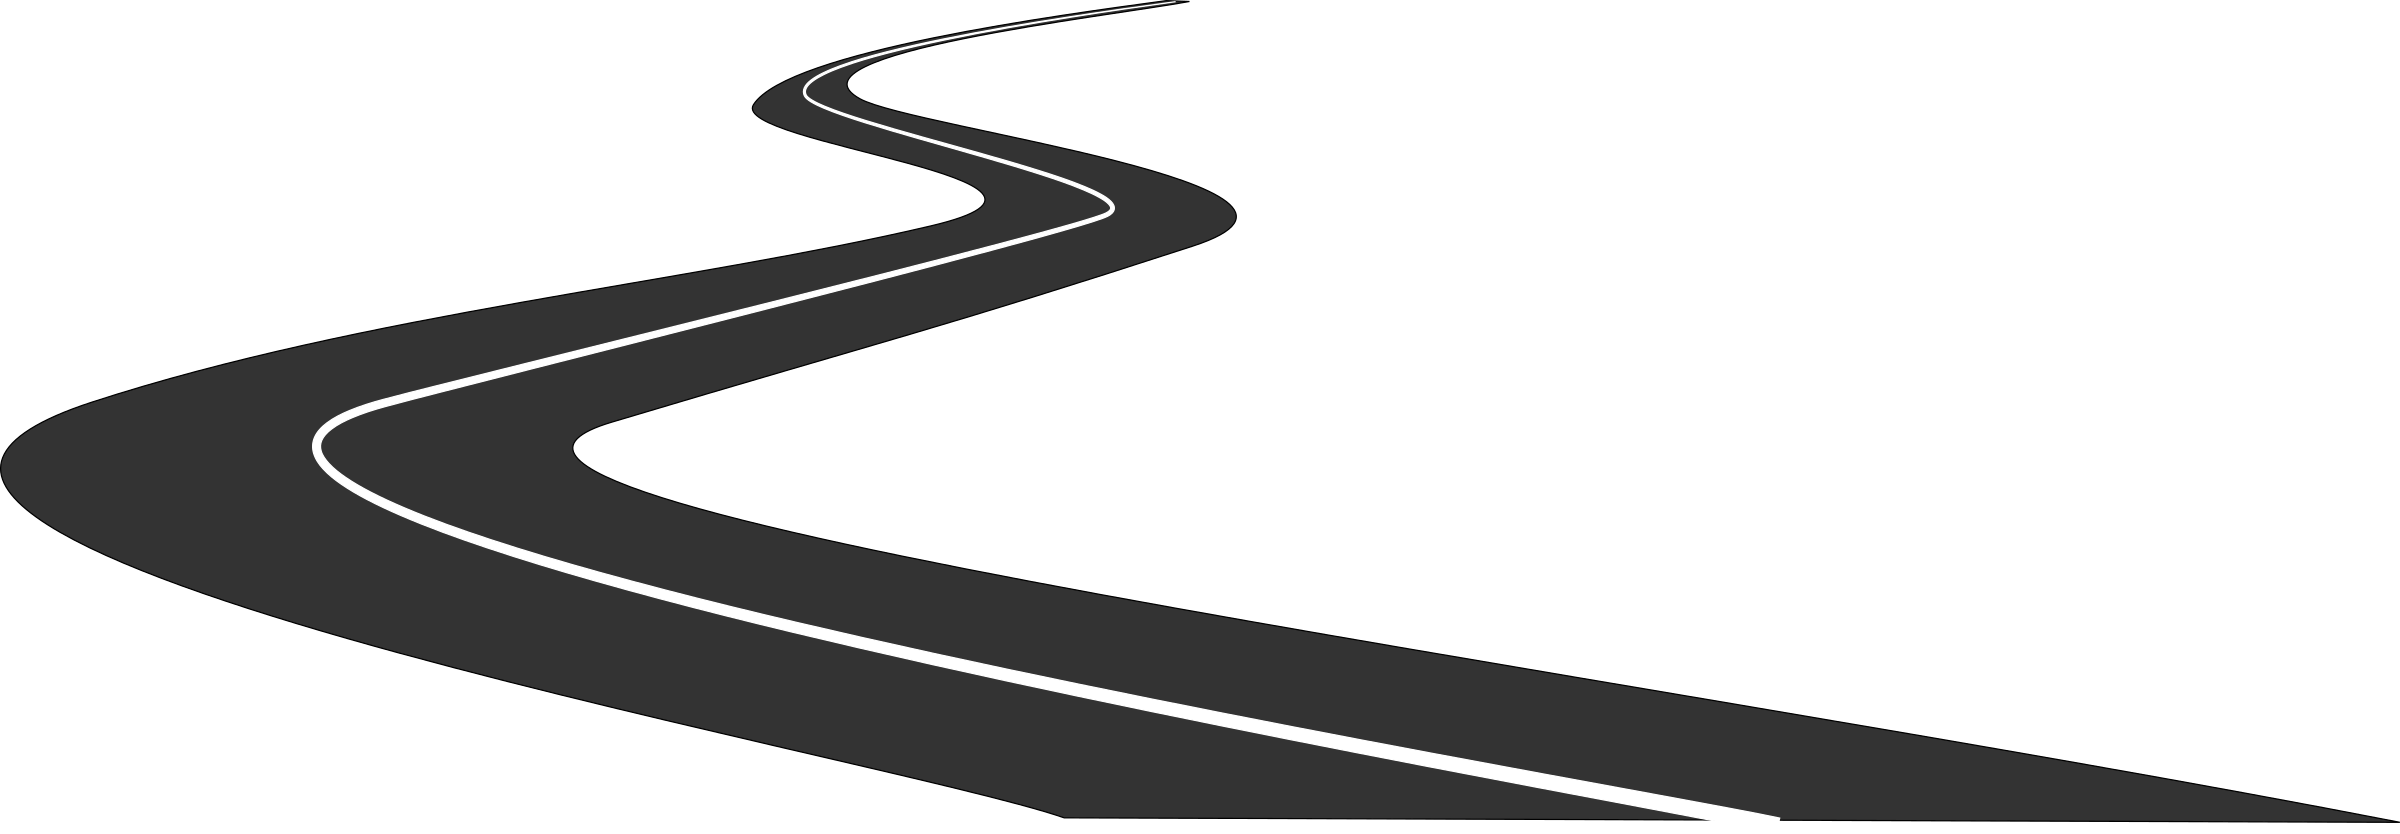 Winding silhouette at getdrawings. Goal clipart journey road